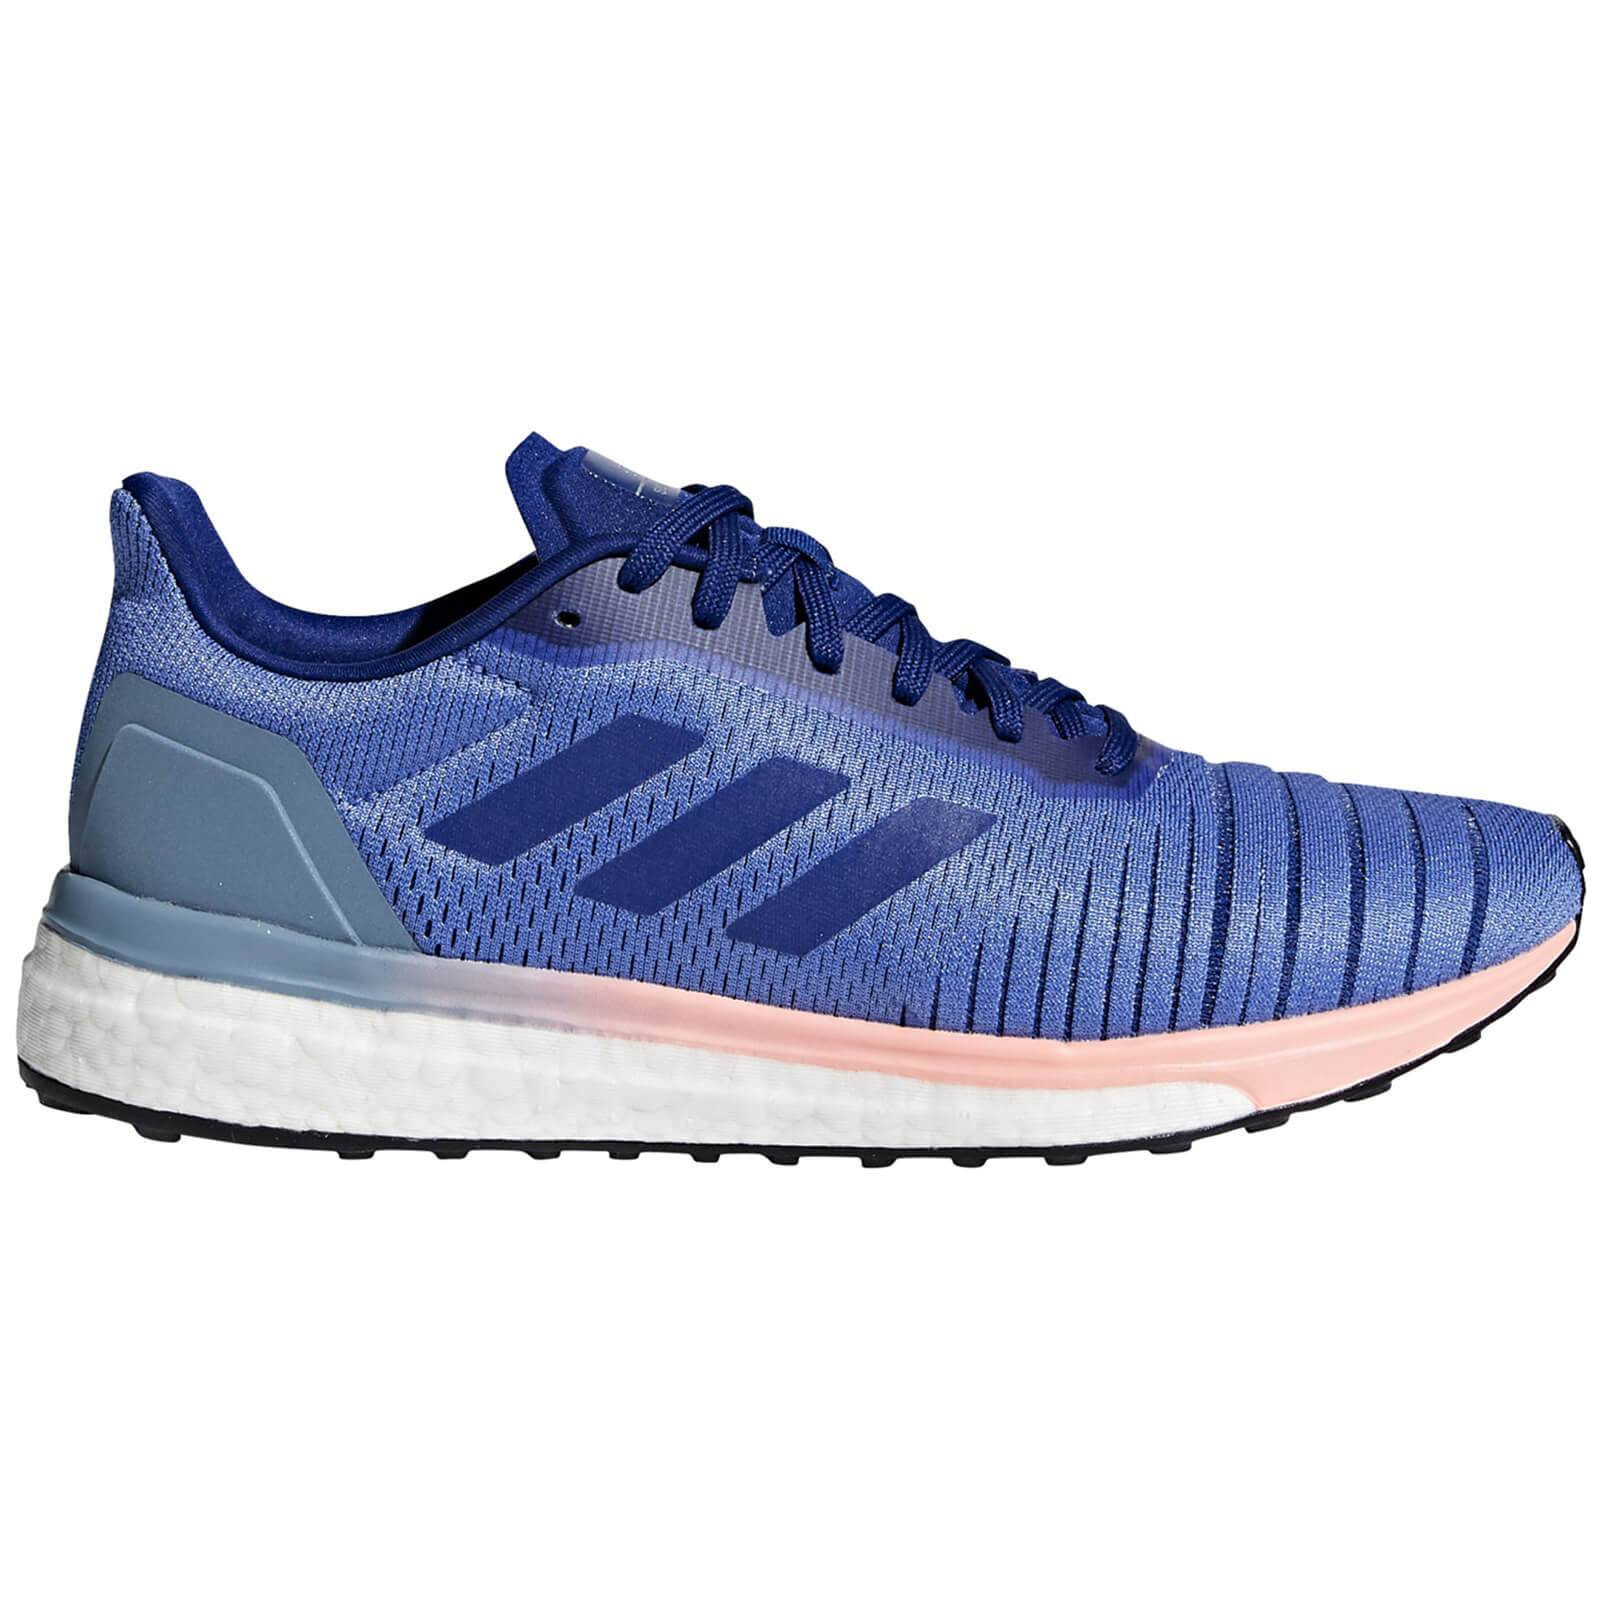 adidas Women's Solar Drive Running Shoes - Lilac/Ink - US 7/UK 5.5 - Purple/Blue